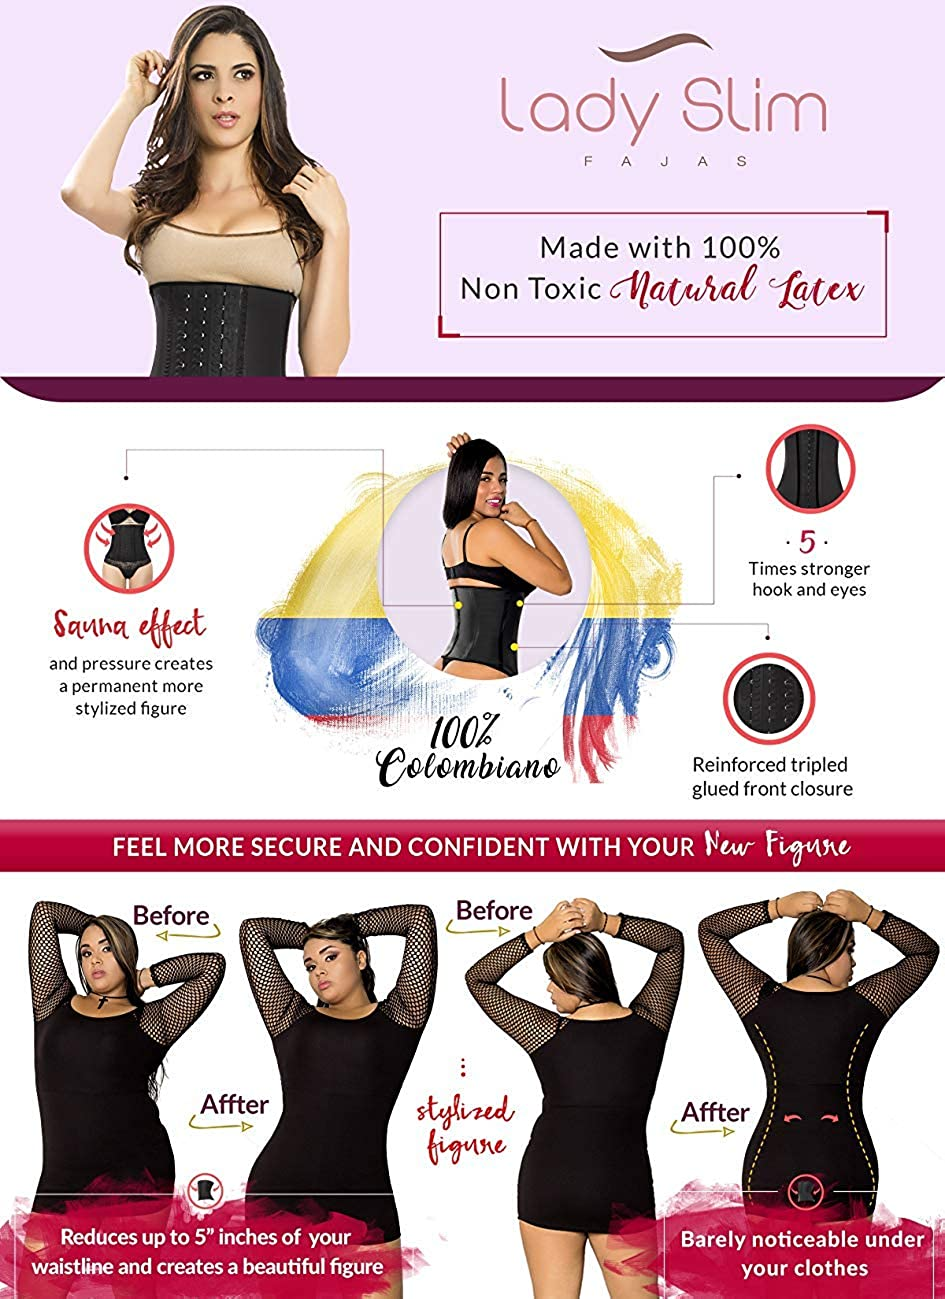 Lady Slim Fajas Colombiana Latex Waist Trainer Cincher Trimmer Corset Weight Loss Shaper at  Women's Clothing store